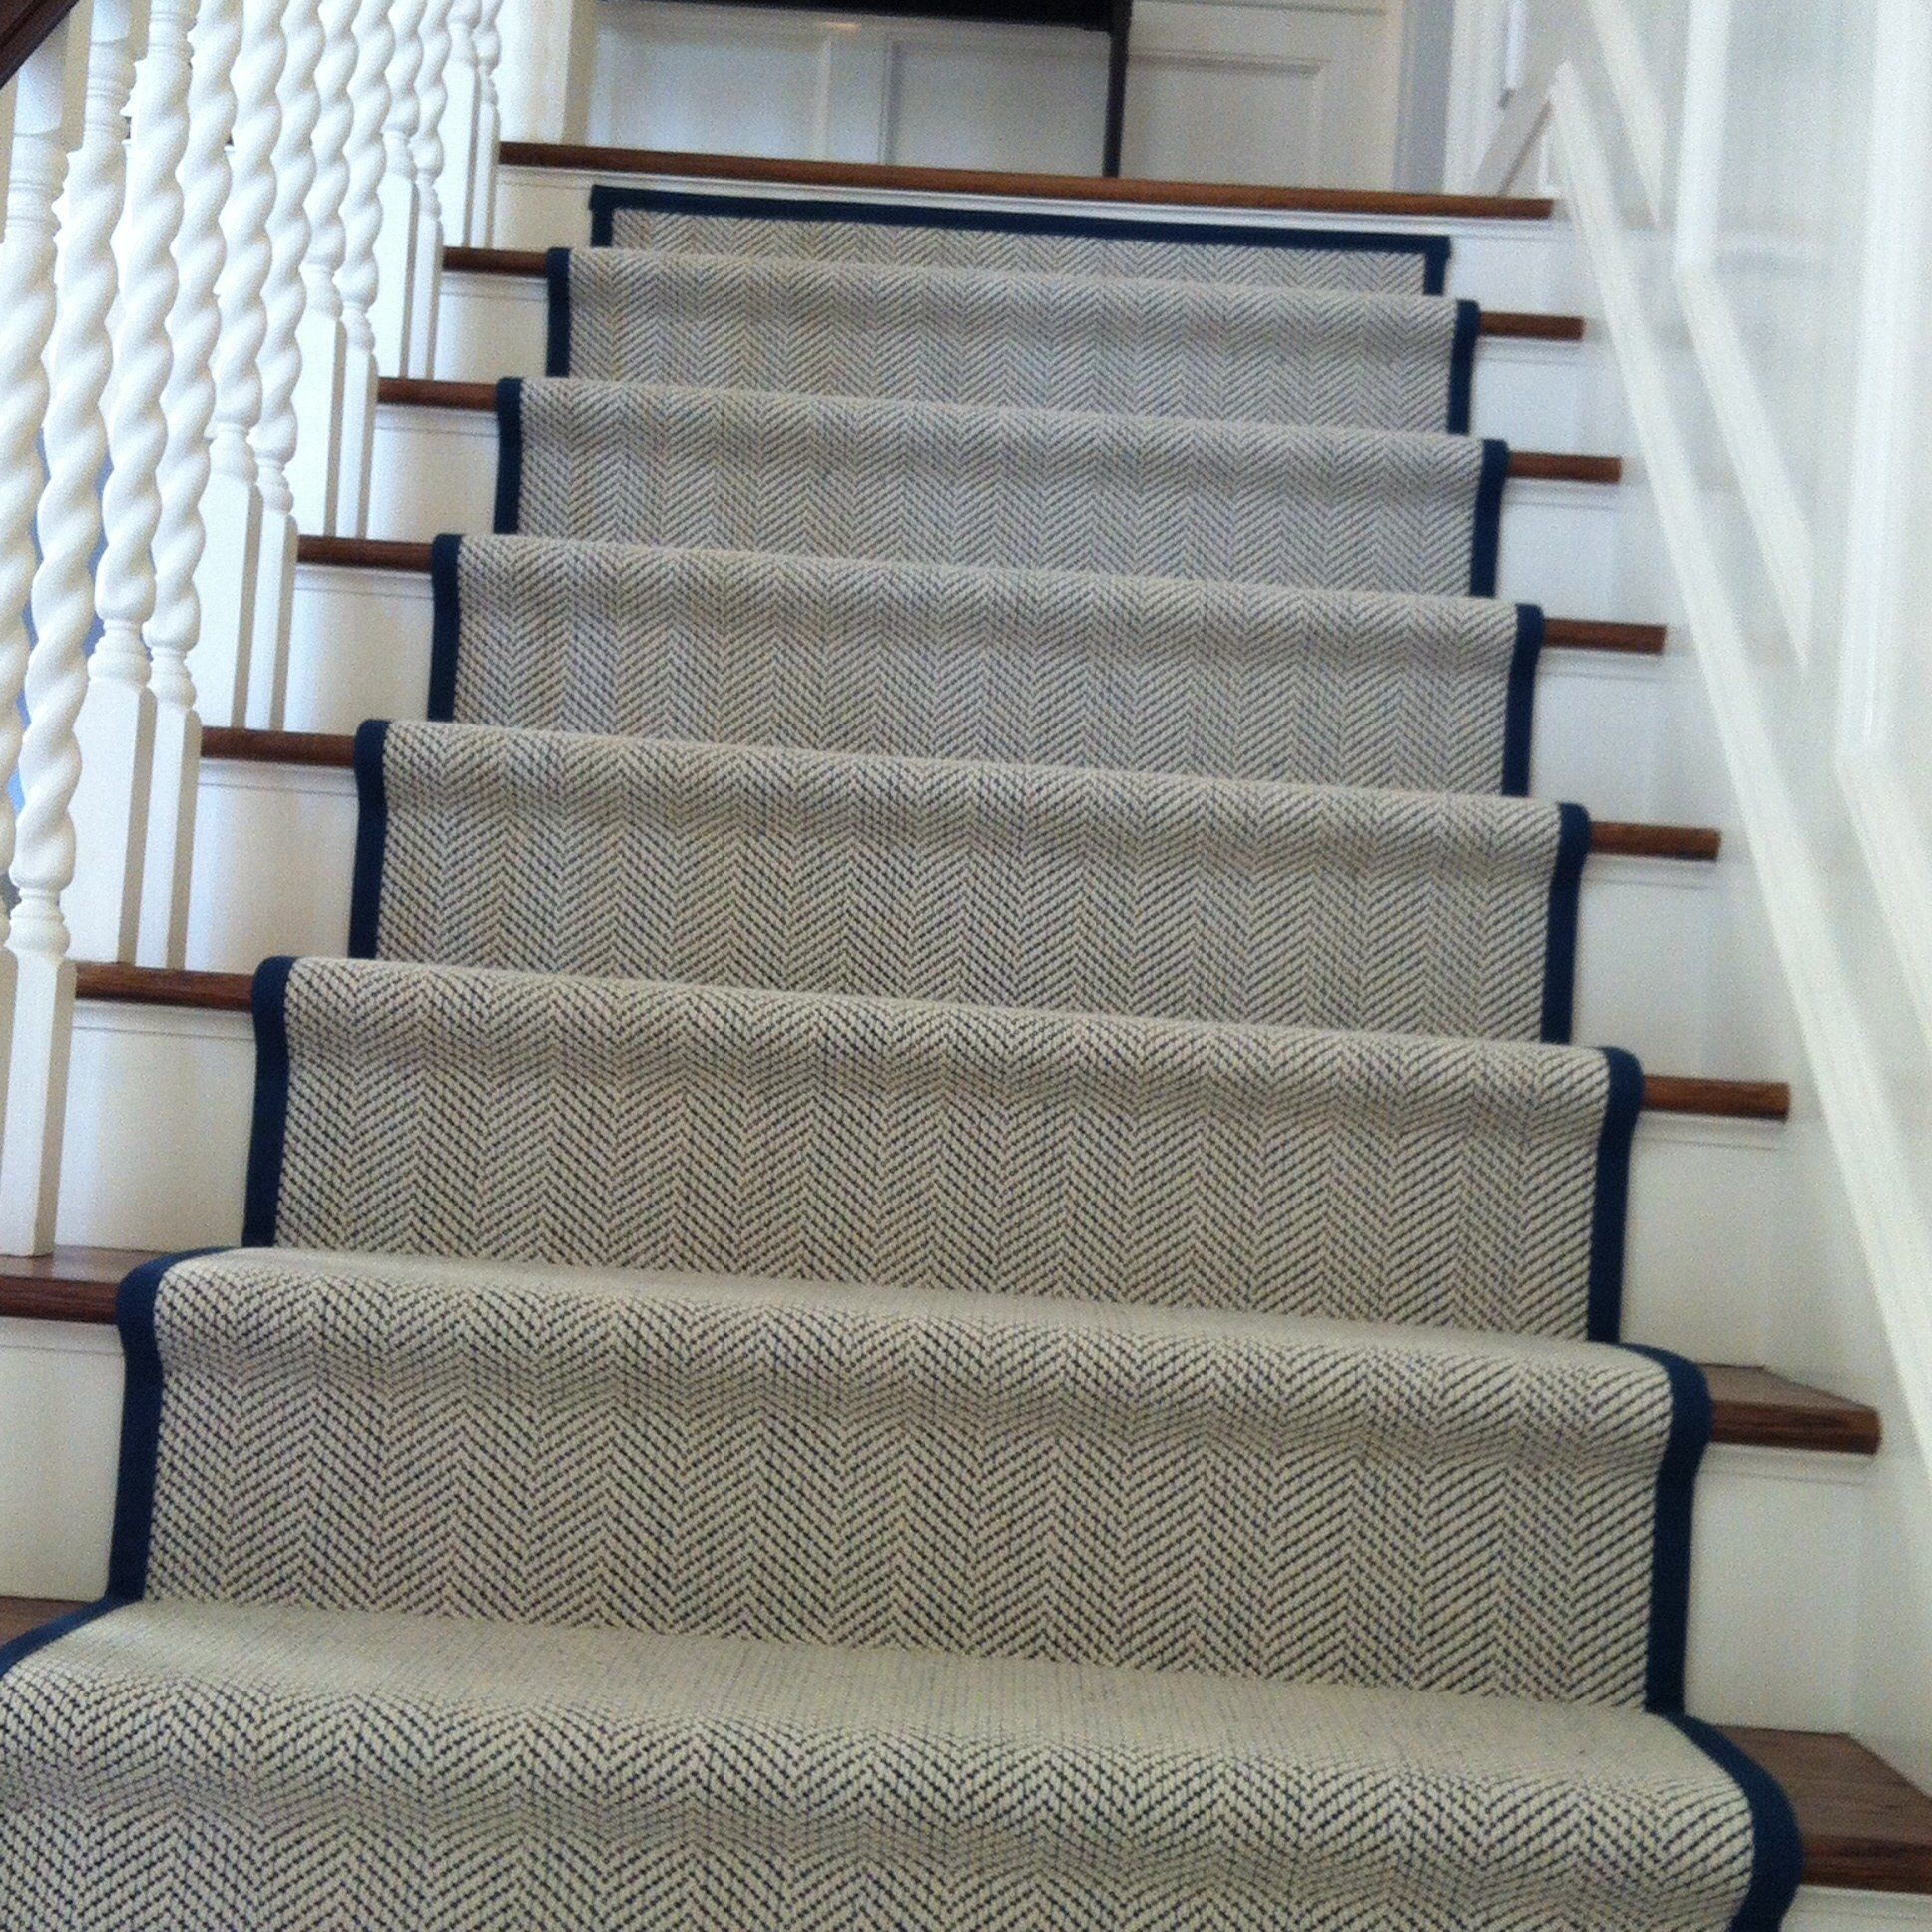 Replacing Carpet With A Stair Runner: My New Staircase Runner Herringbone With A Marine Blue